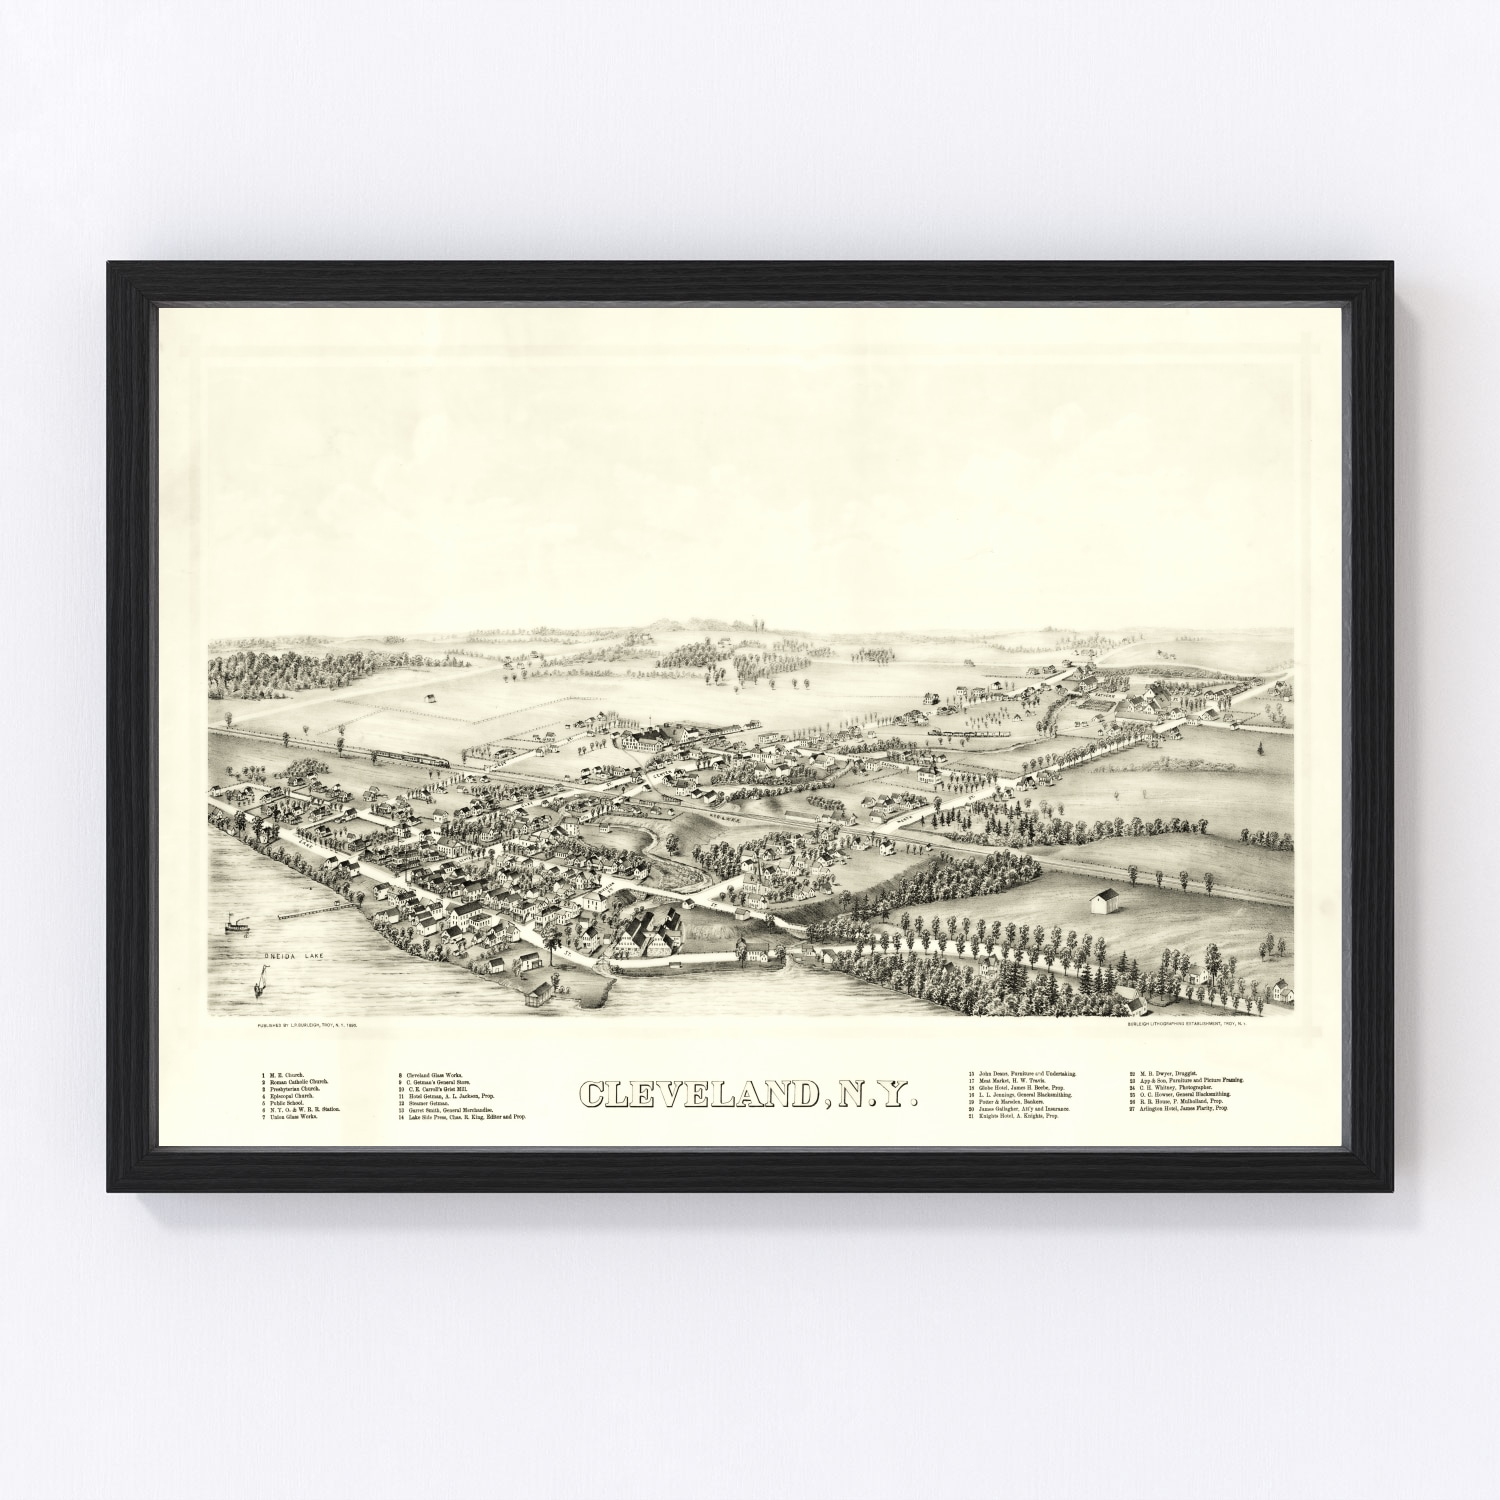 Vintage Map of Cleveland, New York 1890